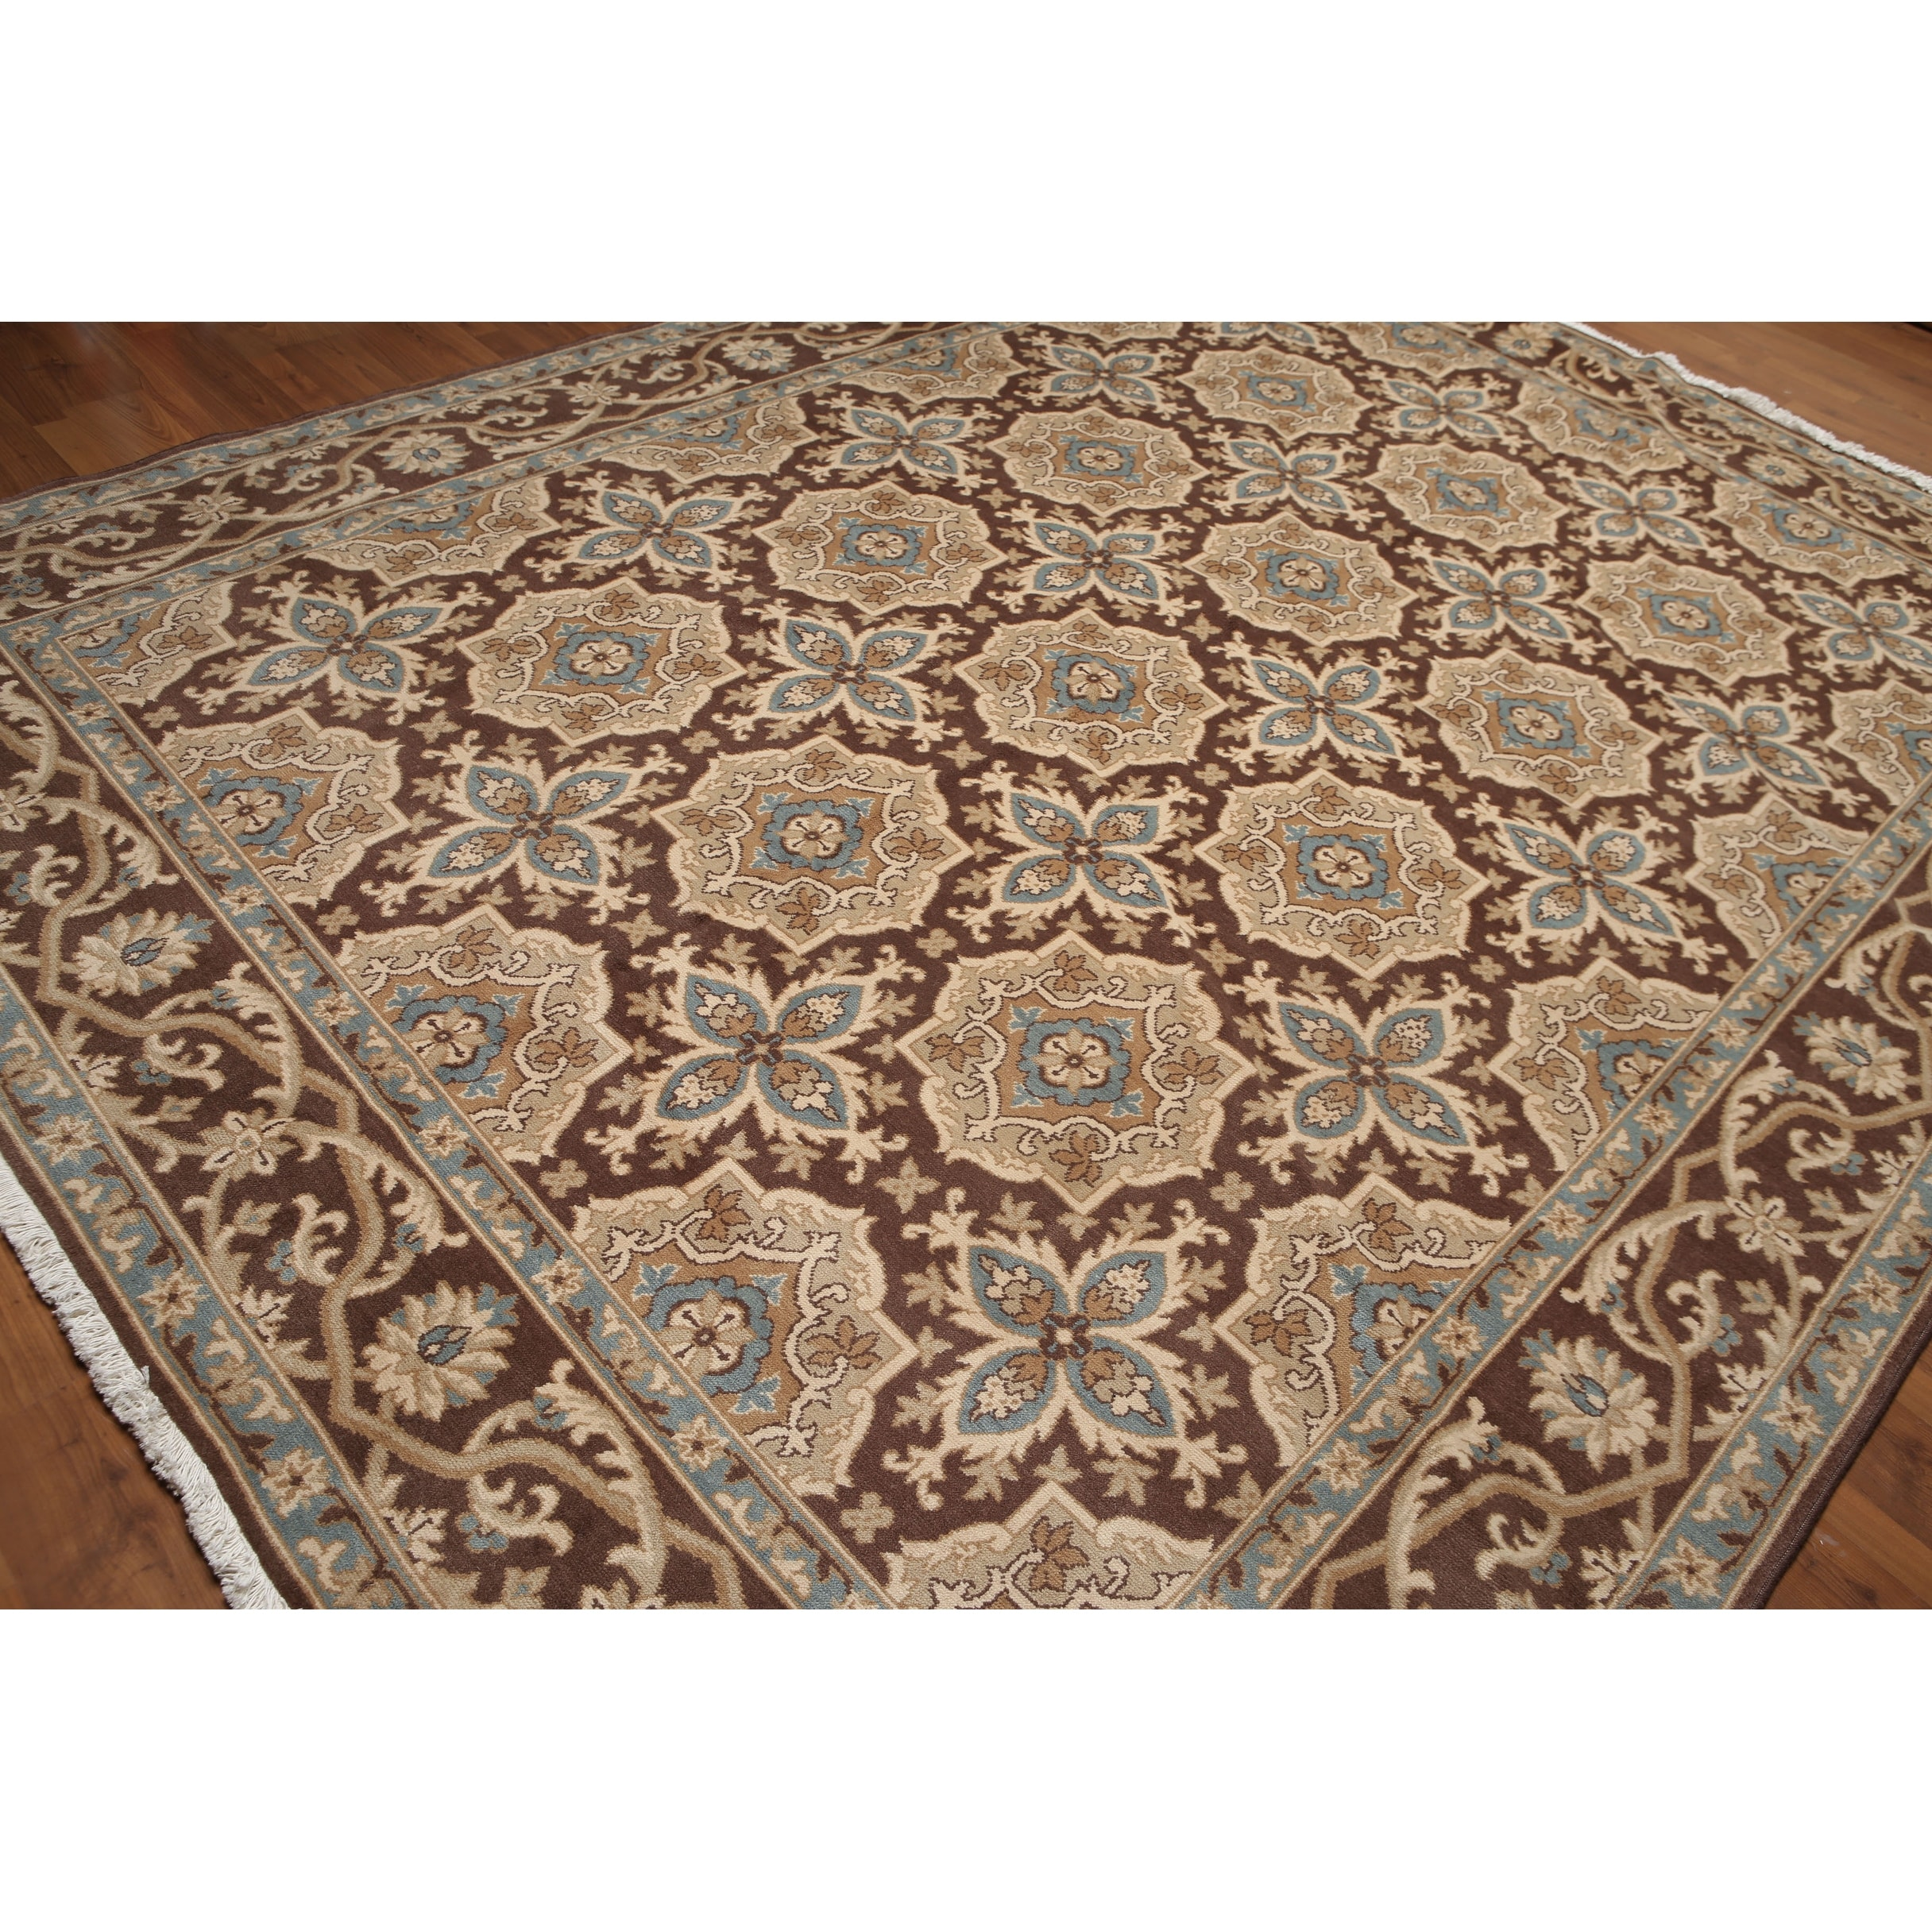 Beige Brown Gray Turquoise Multi Oriental Rug Wool Traditional Oriental Area Rug 9x12 9 X 12 Overstock 31302209